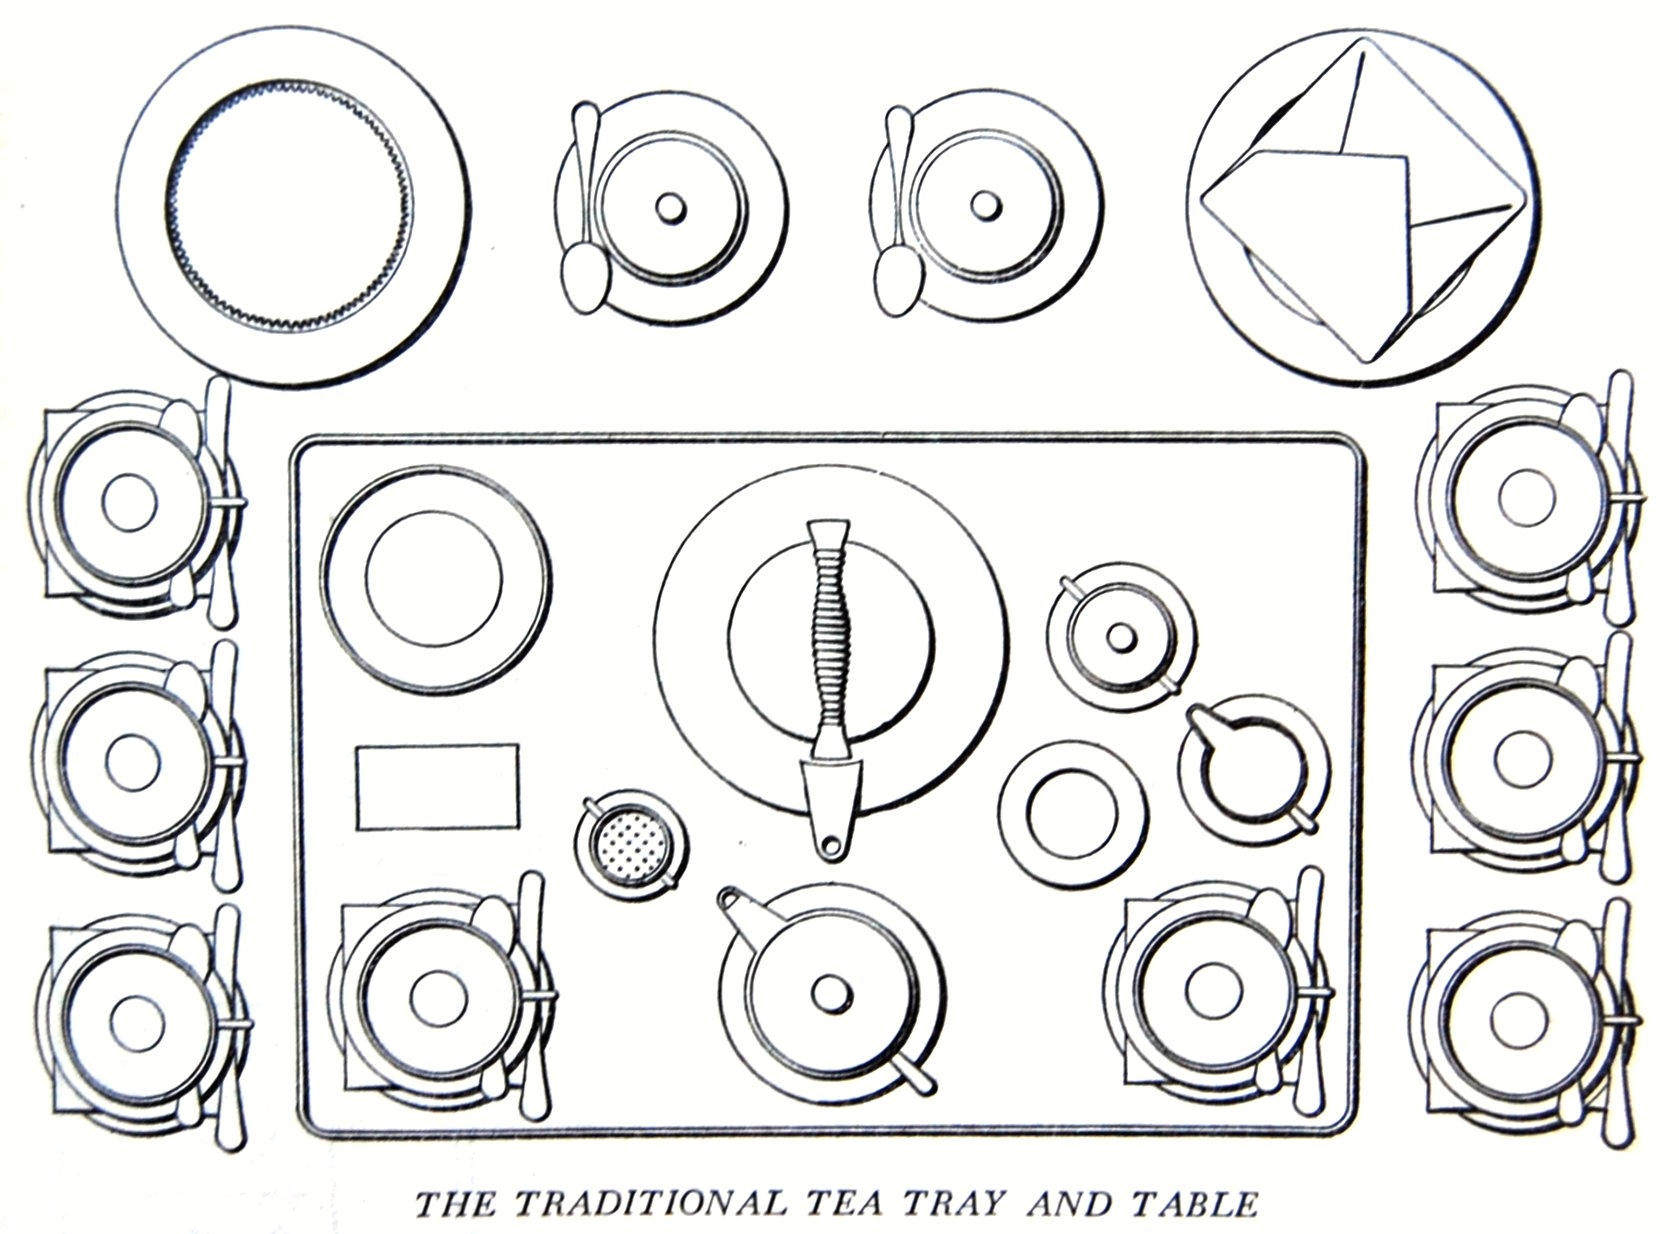 The Traditional Tea Tray And Table